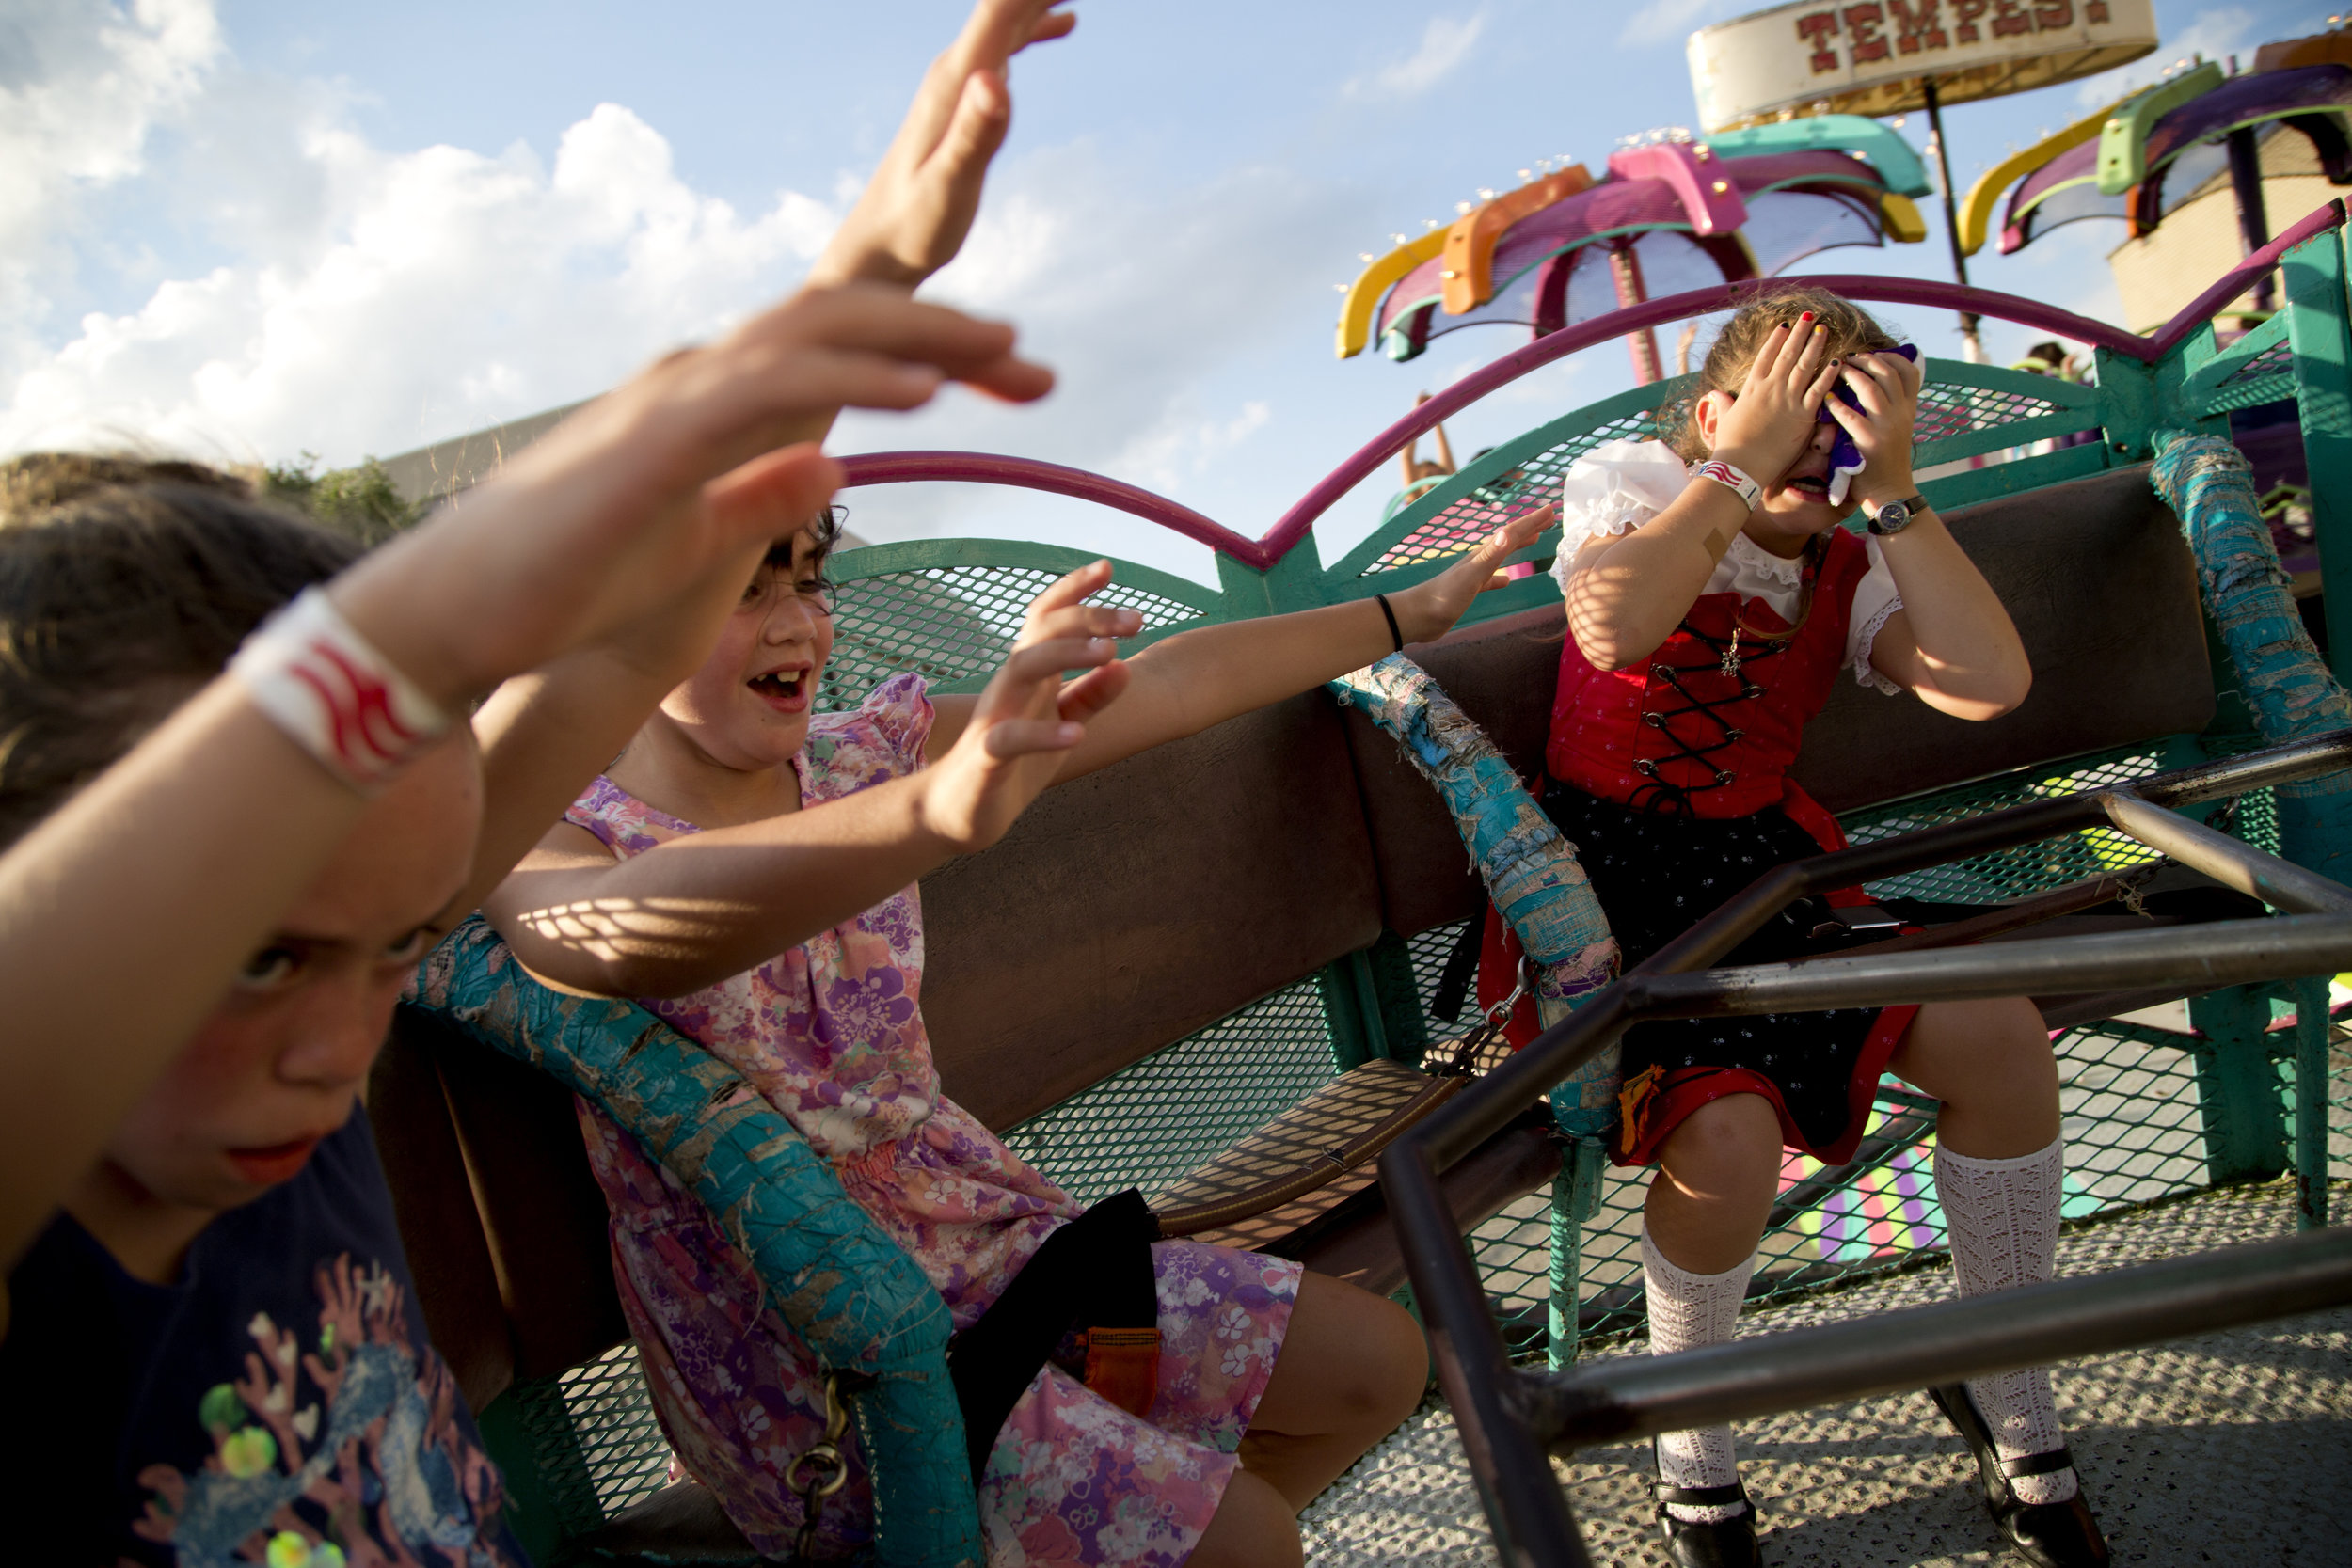 Little Miss Strassenfest Kennedy Kunkel of Jasper, 8, right, covered her eyes after getting dizzy on the Tempest carnival ride during Strassenfest in Jasper on Saturday. Ava Claire Werne of Jasper, 8, left, and Tessa Werne of Jasper, 7, tried to keep their hands in the air for the entire ride.